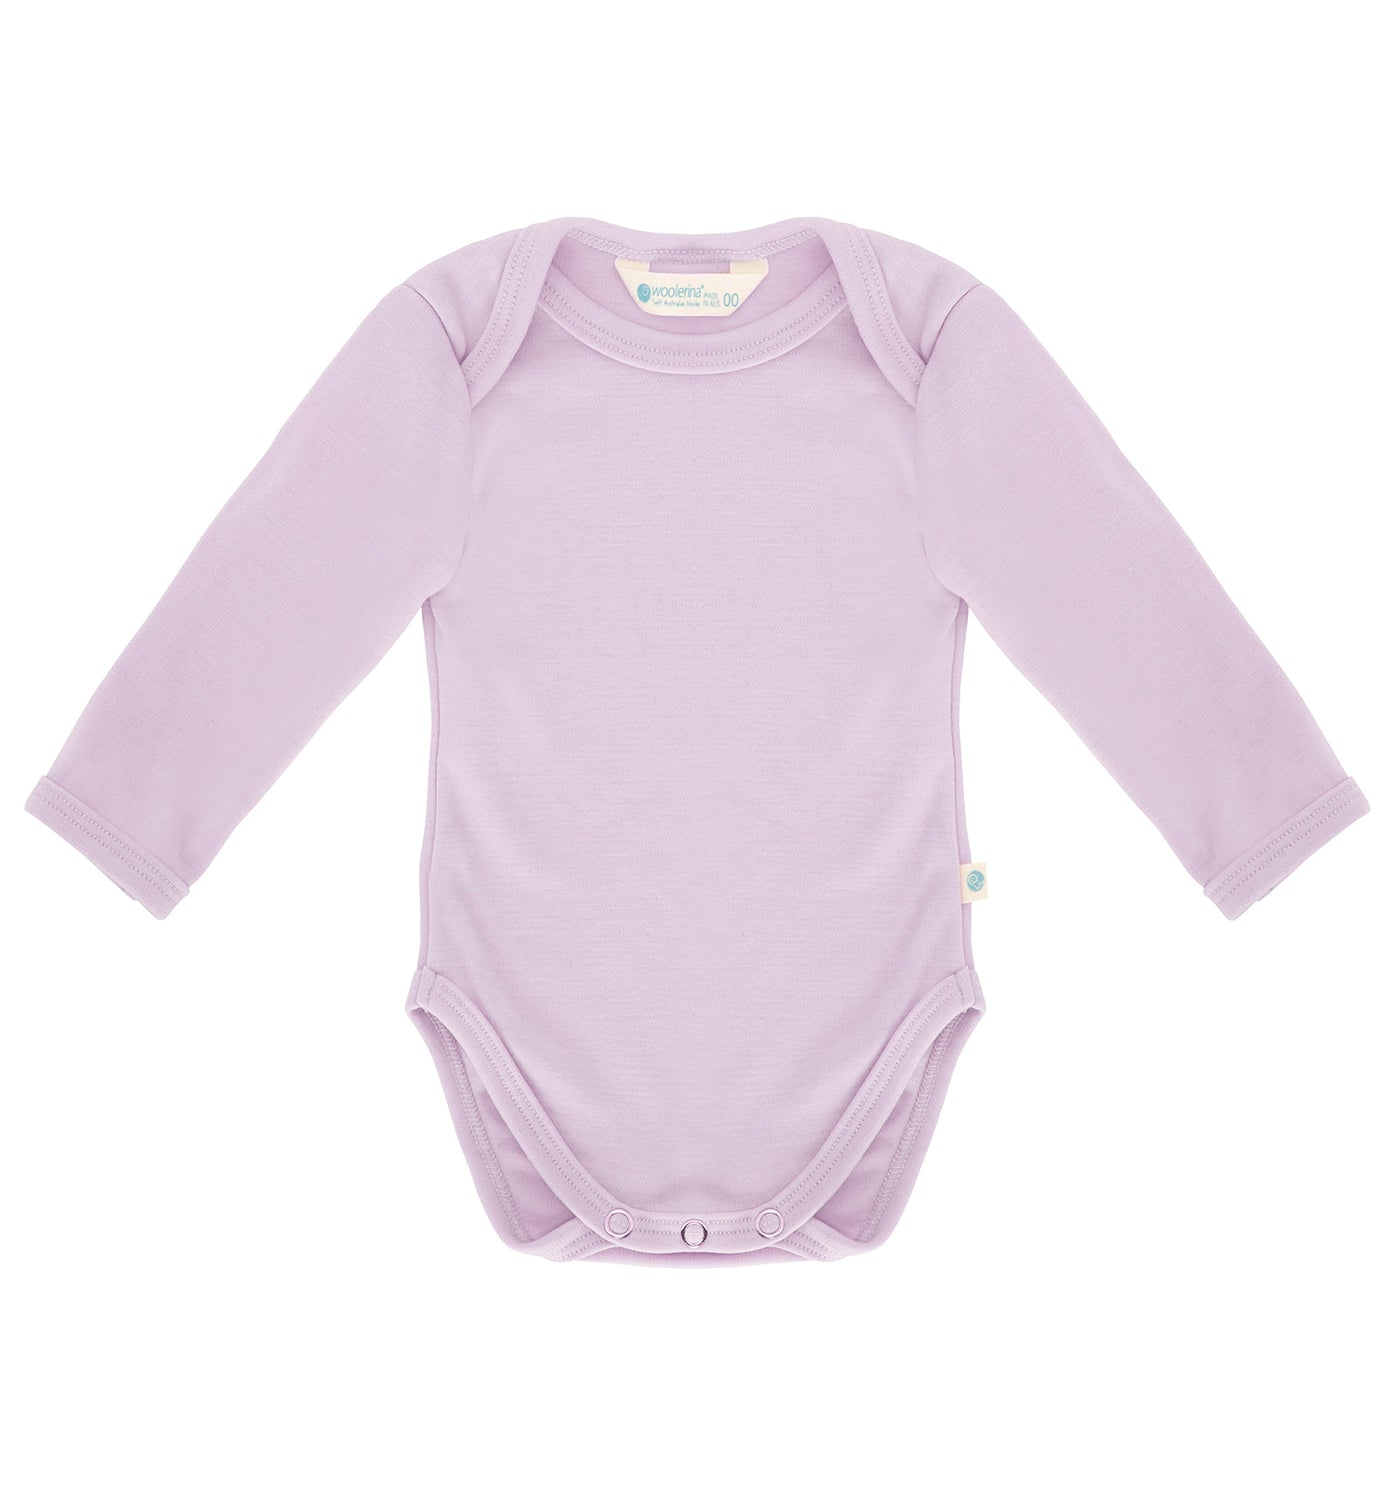 SALE Baby Bodysuit